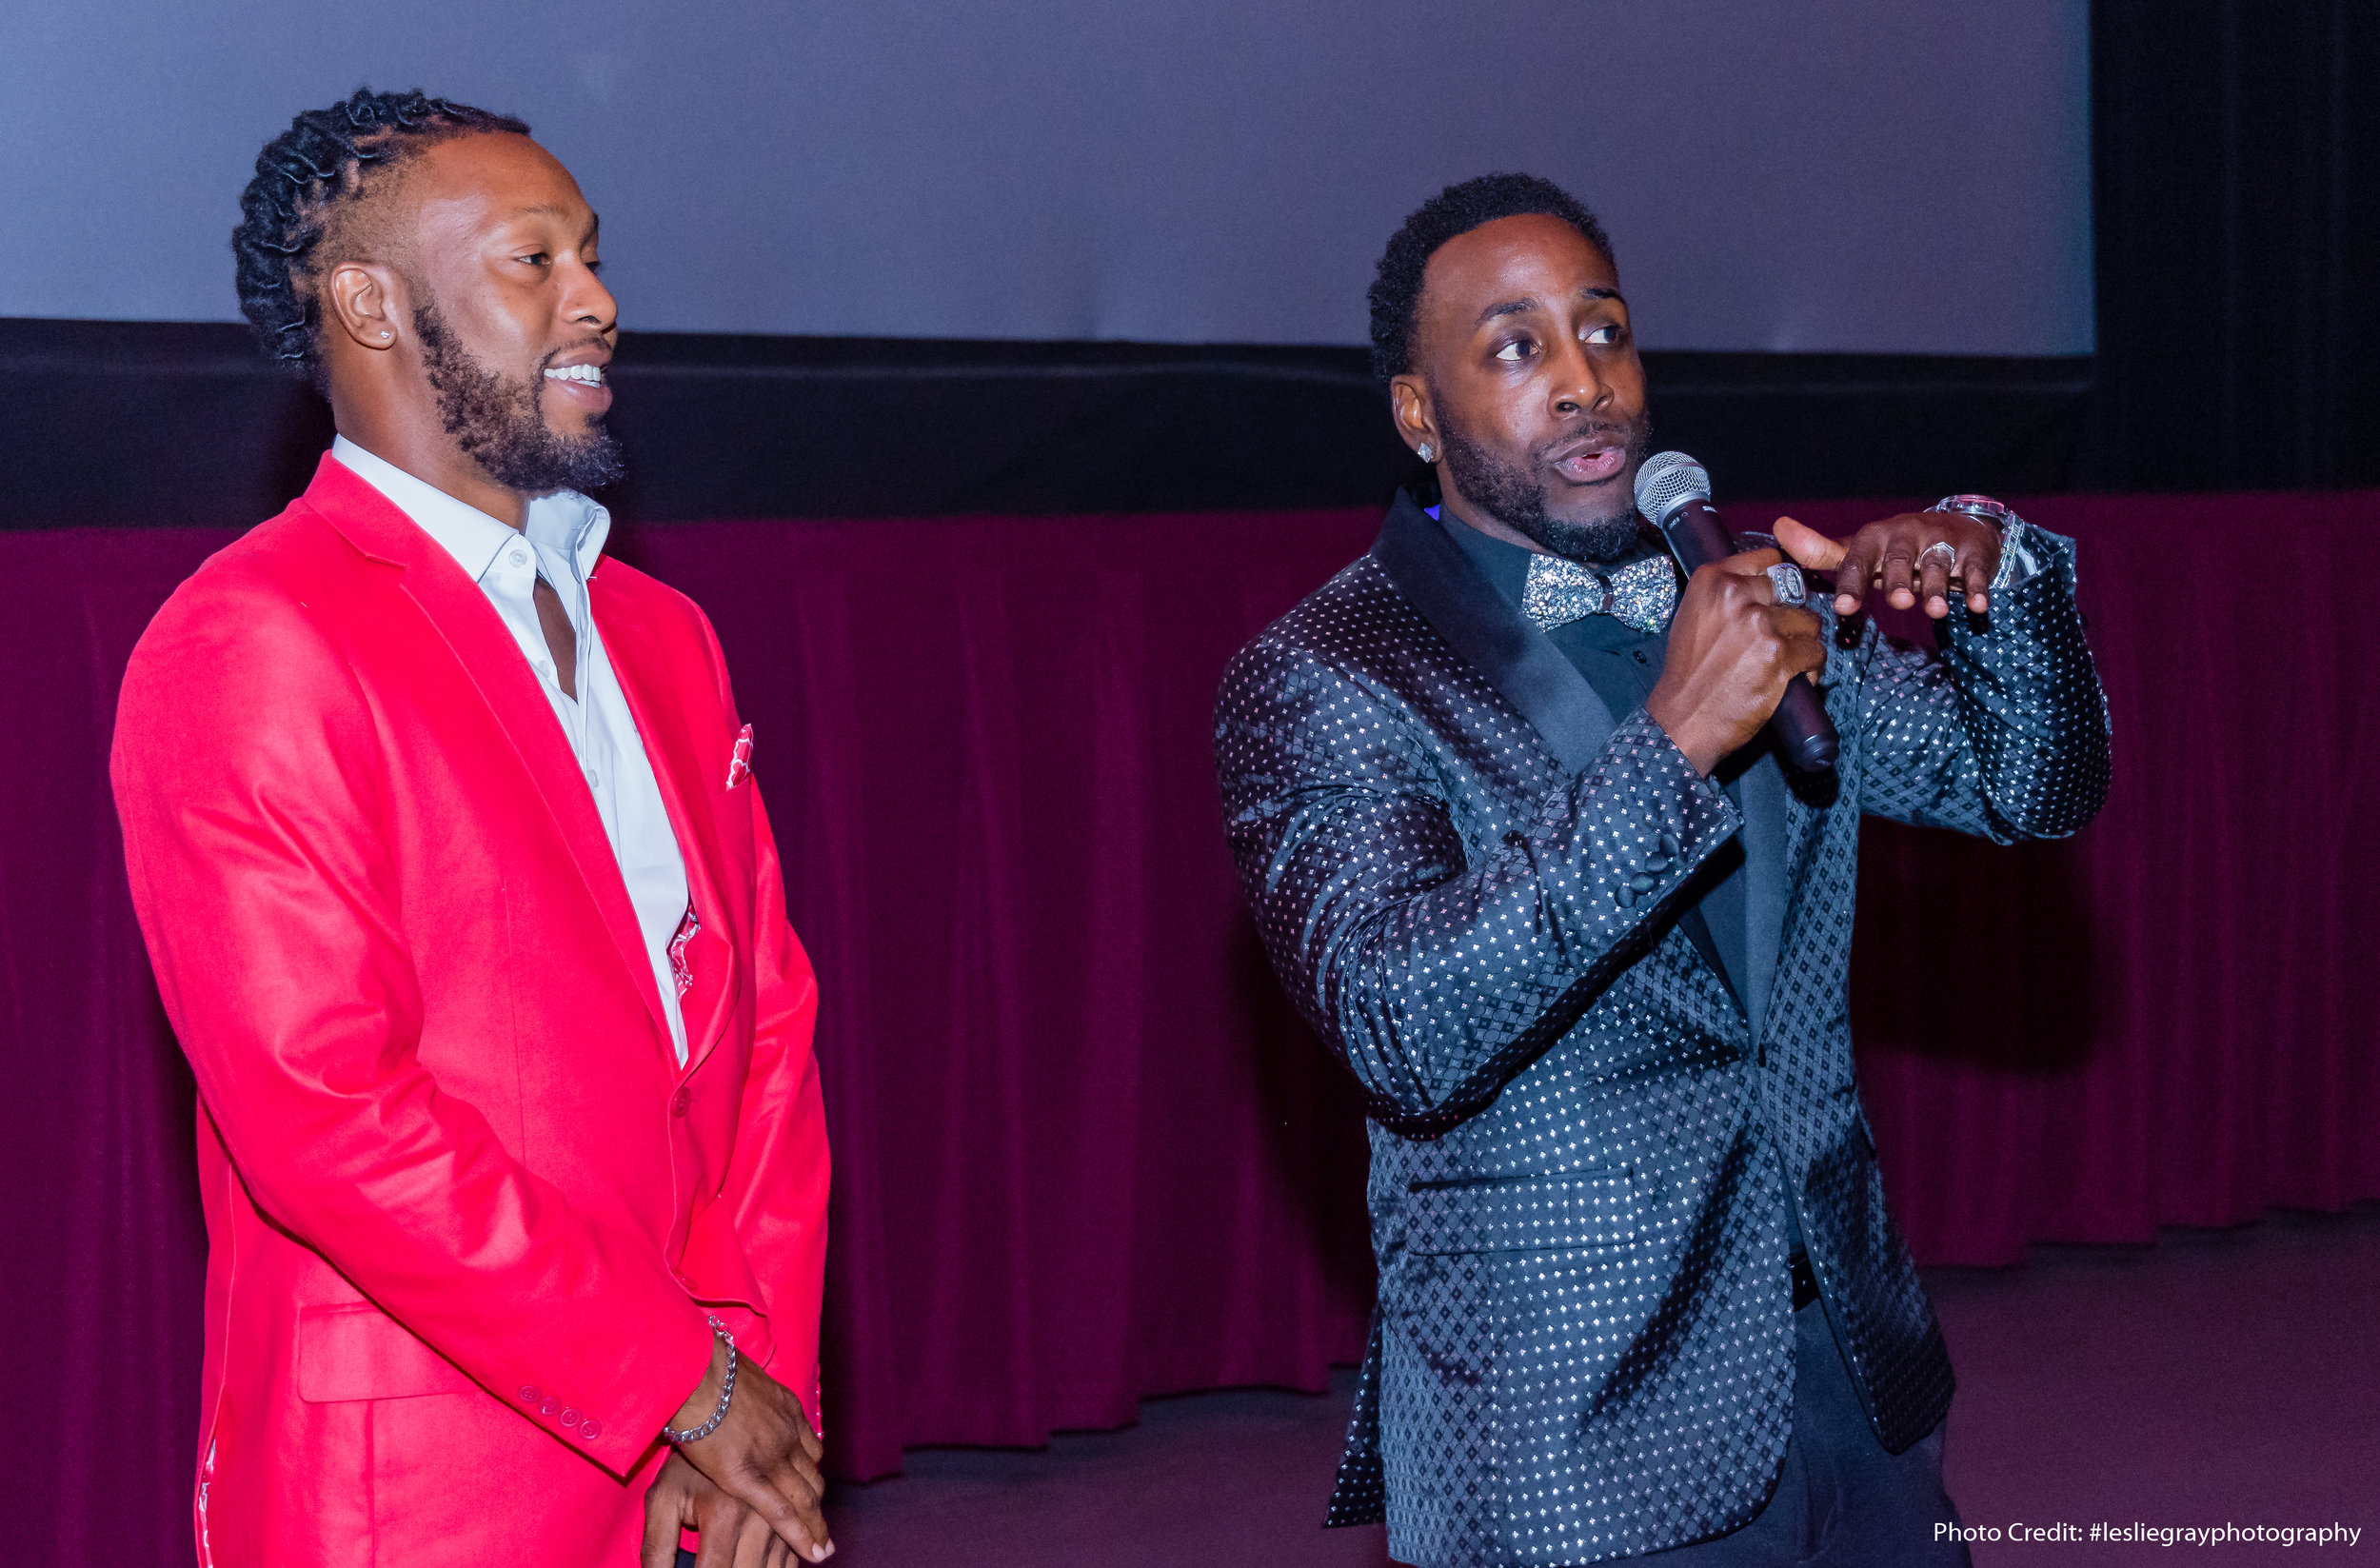 Bryan Boykins (Writer/Director) and Troy Williams at the red carpet premiere on July 23, 2018 of The Watchman's Edict at AMC Bradenton 20 in Bradenton, FL. | Courtesy of Leslie Gray Photography